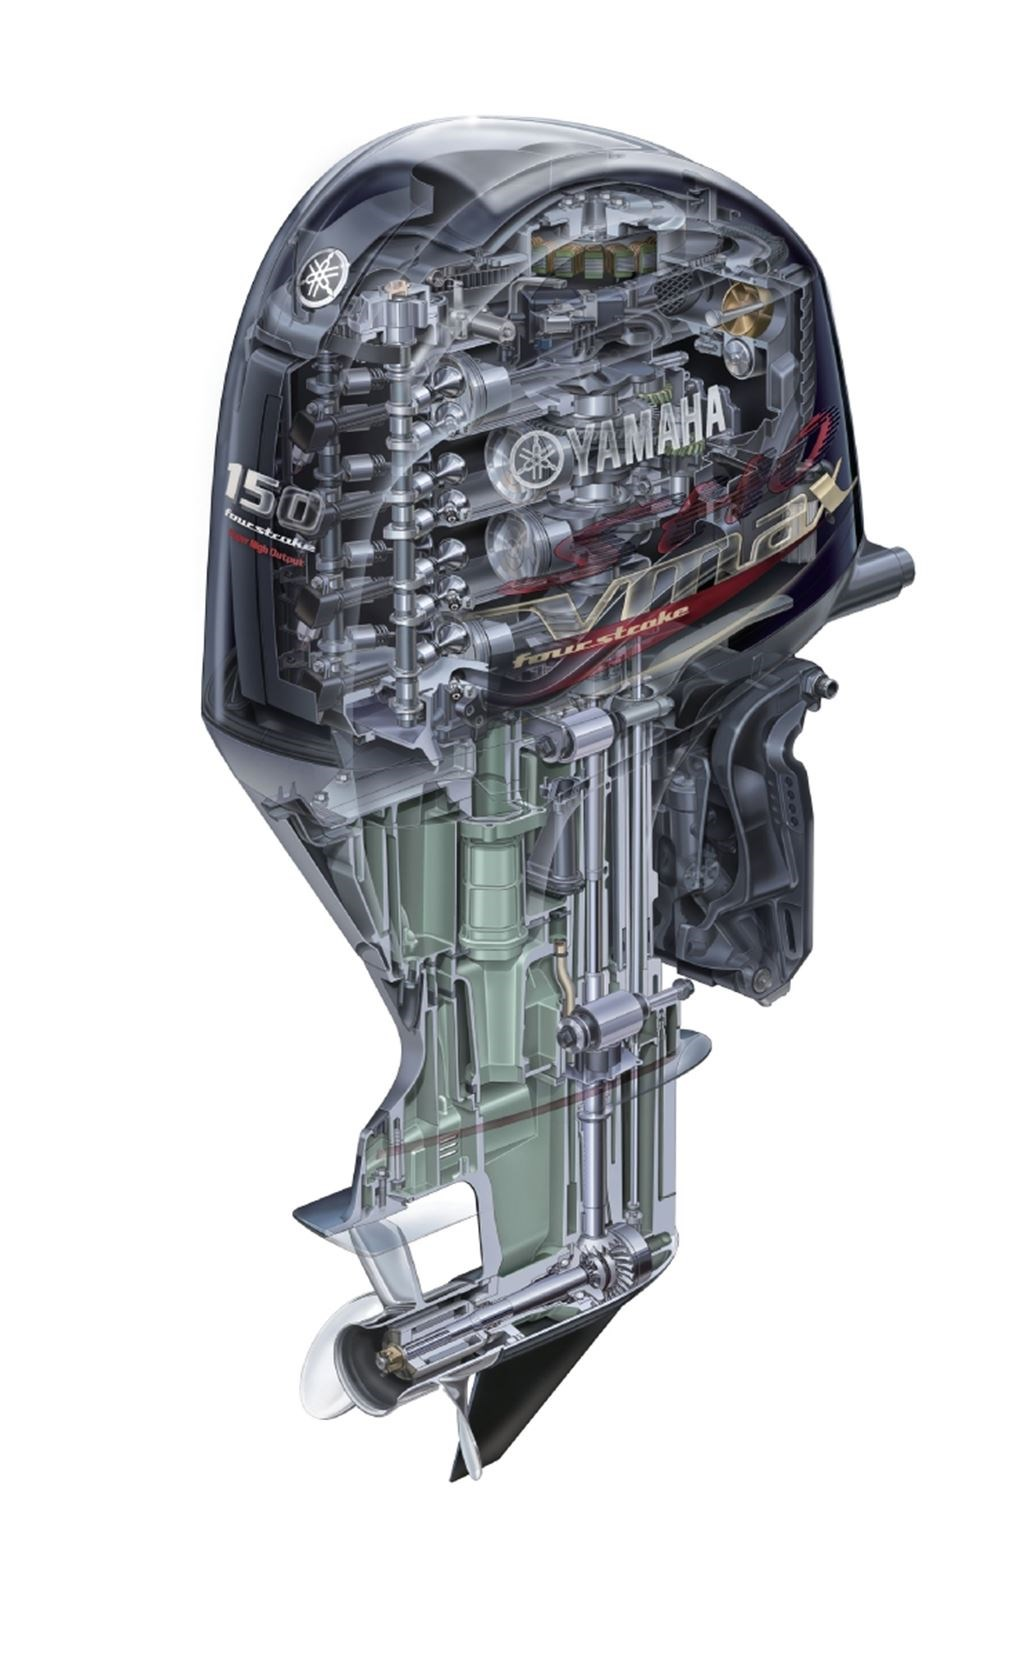 Yamaha v max sho 2016 new outboard for sale in tilbury for Outboard motor for sale ontario